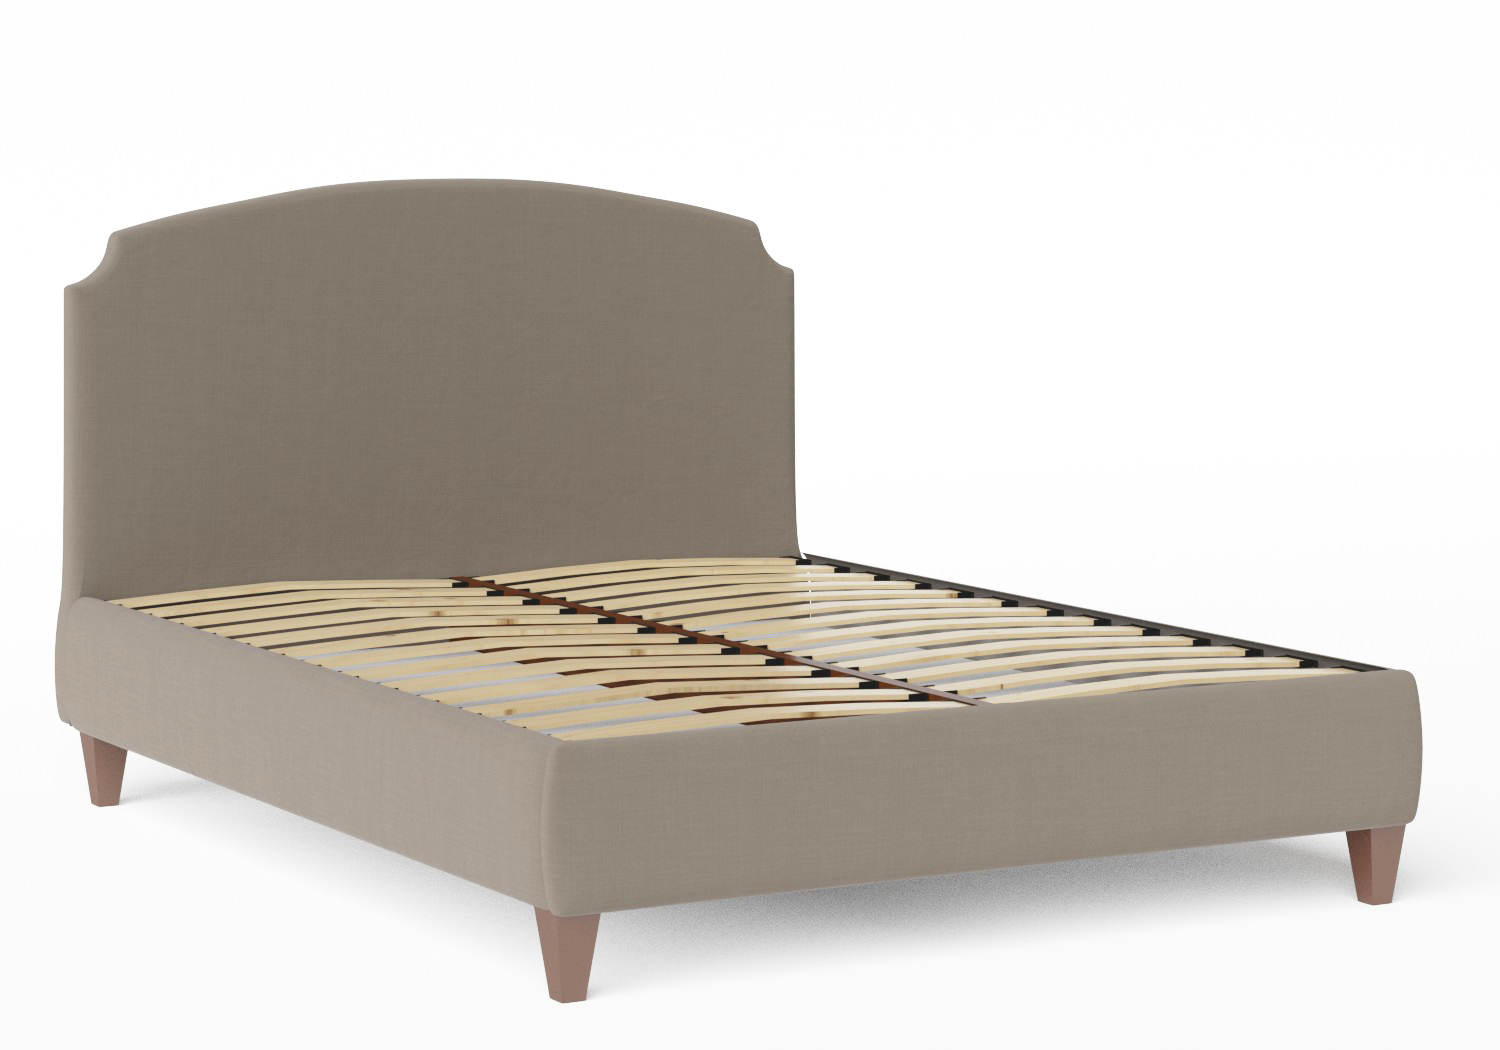 Lide Upholstered Bed in Grey fabric shown with slatted frame